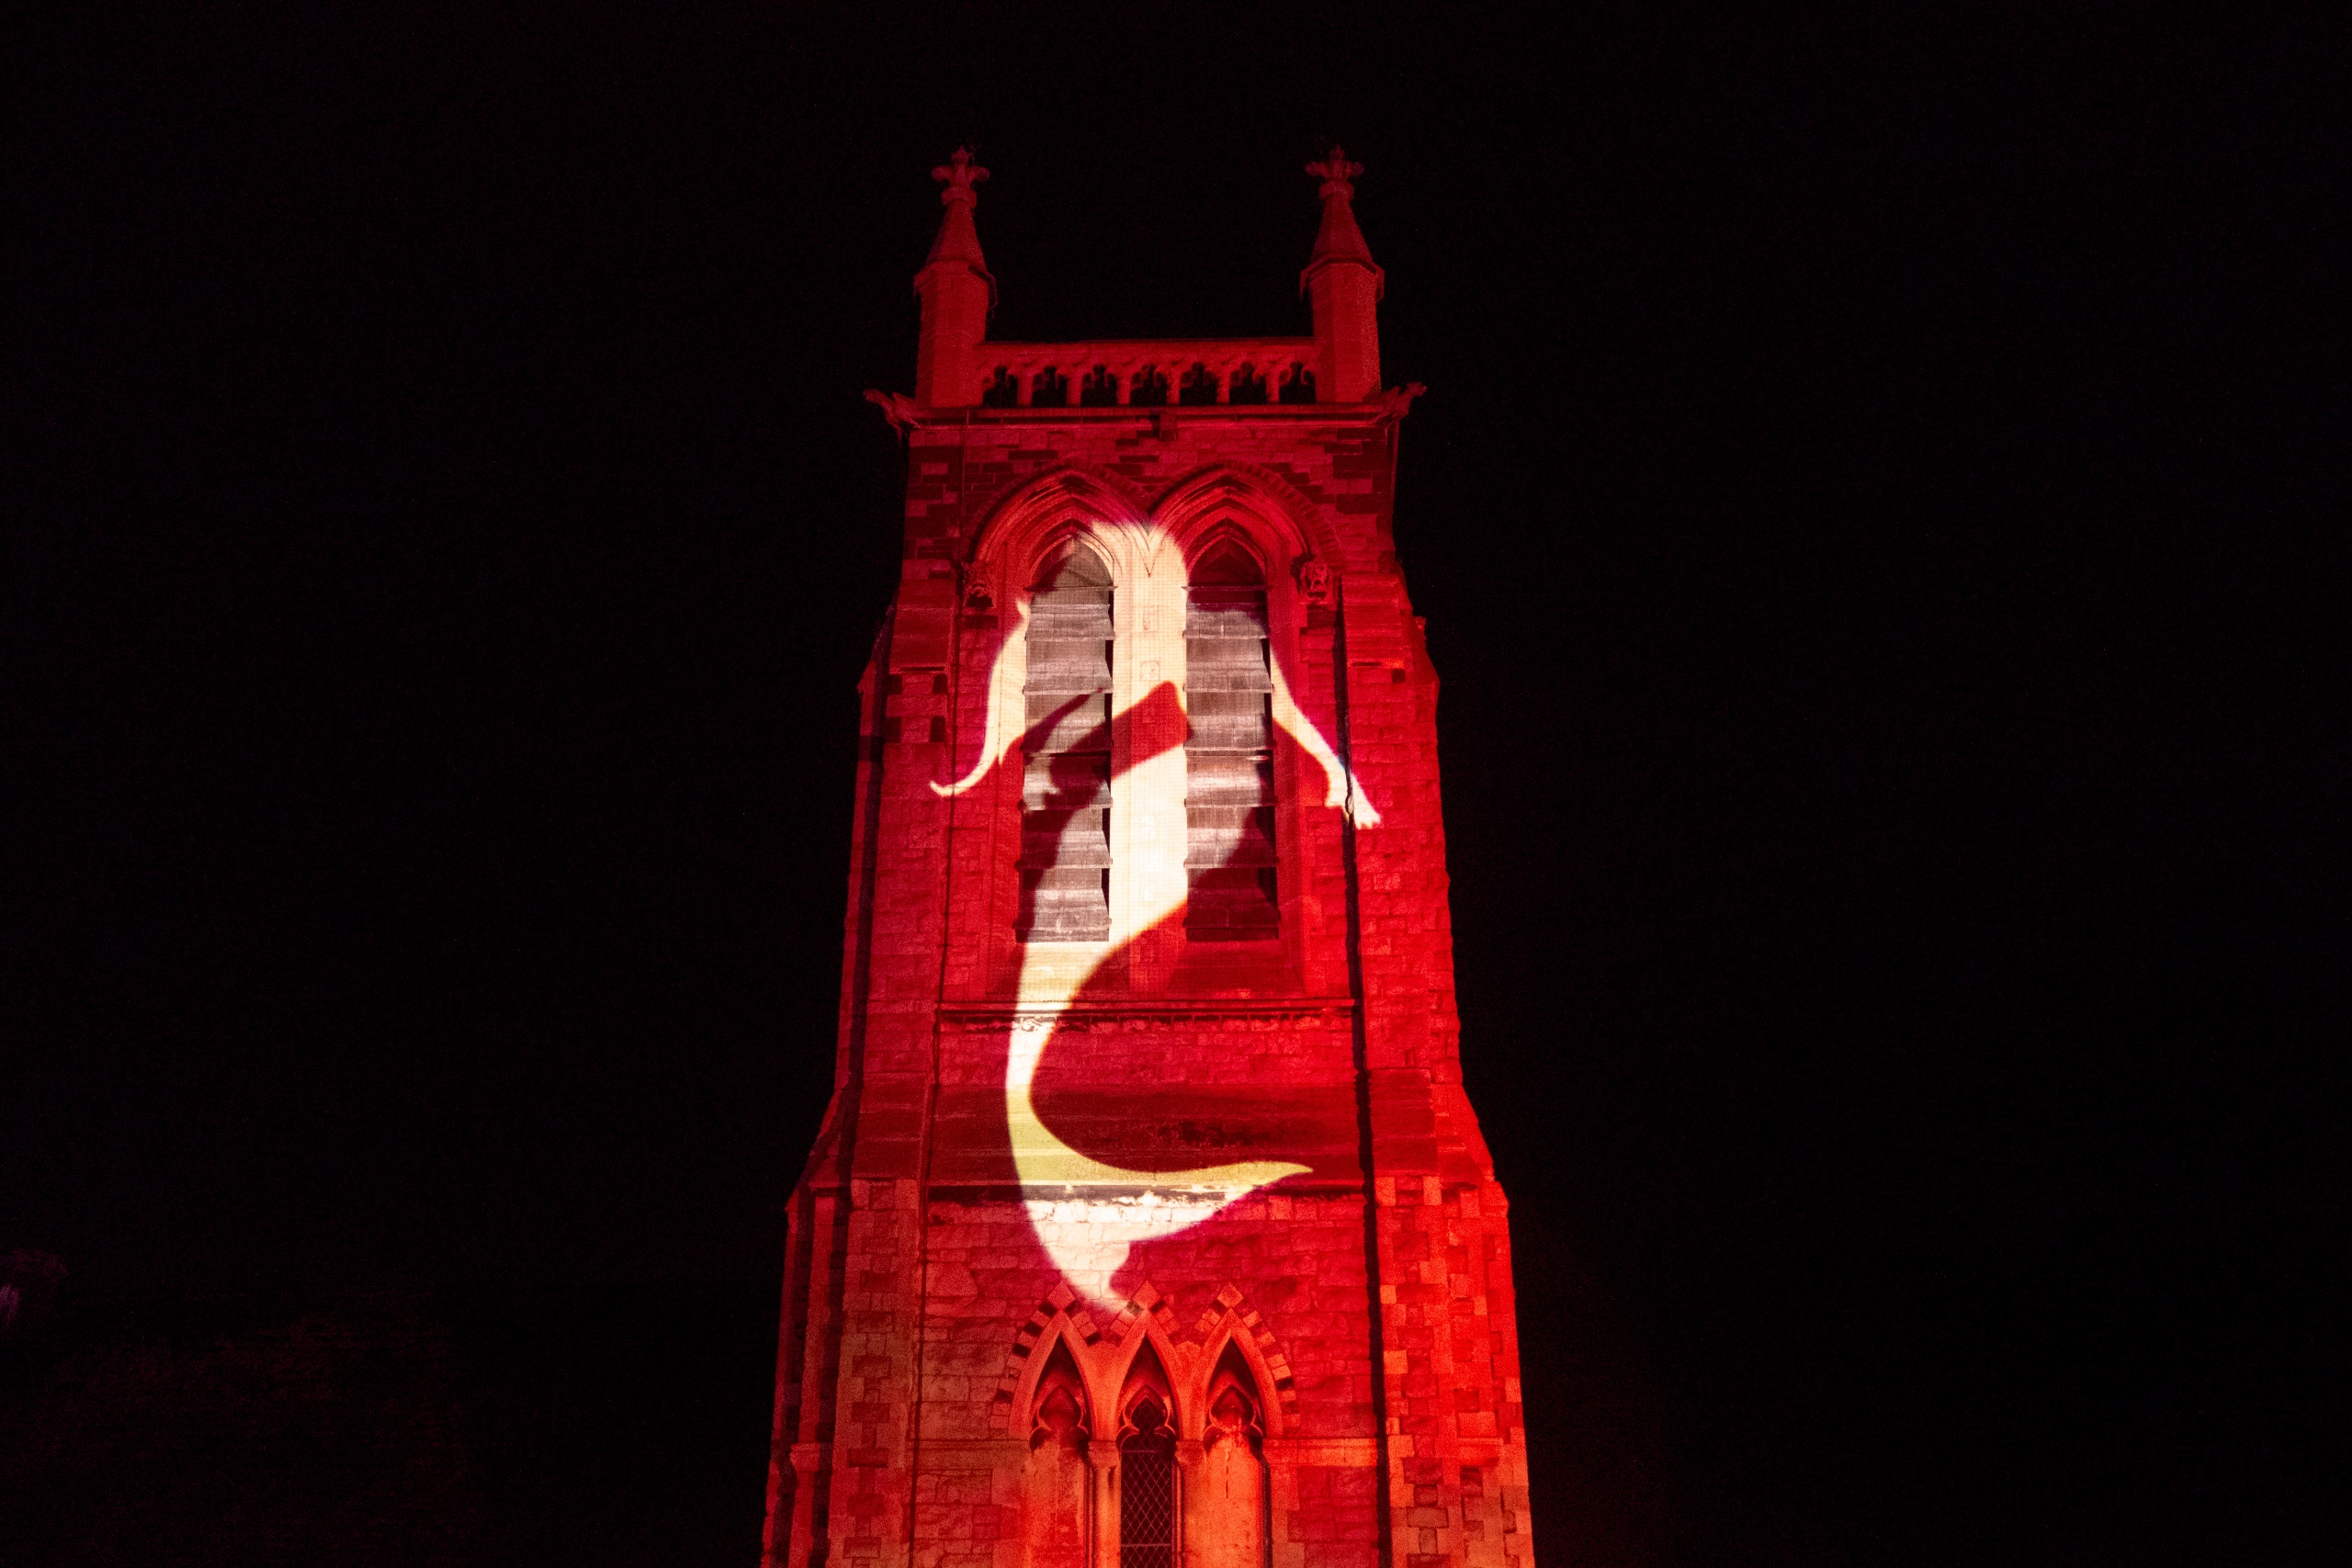 Coloured outdoor lighting and gobo projection at the Llandudno Winter Light / Golau Gaeaf event, in North Wales. The tower of Holy Trinity Church on Mostyn Street is illuminated in red with a white gobo of a mermaid.